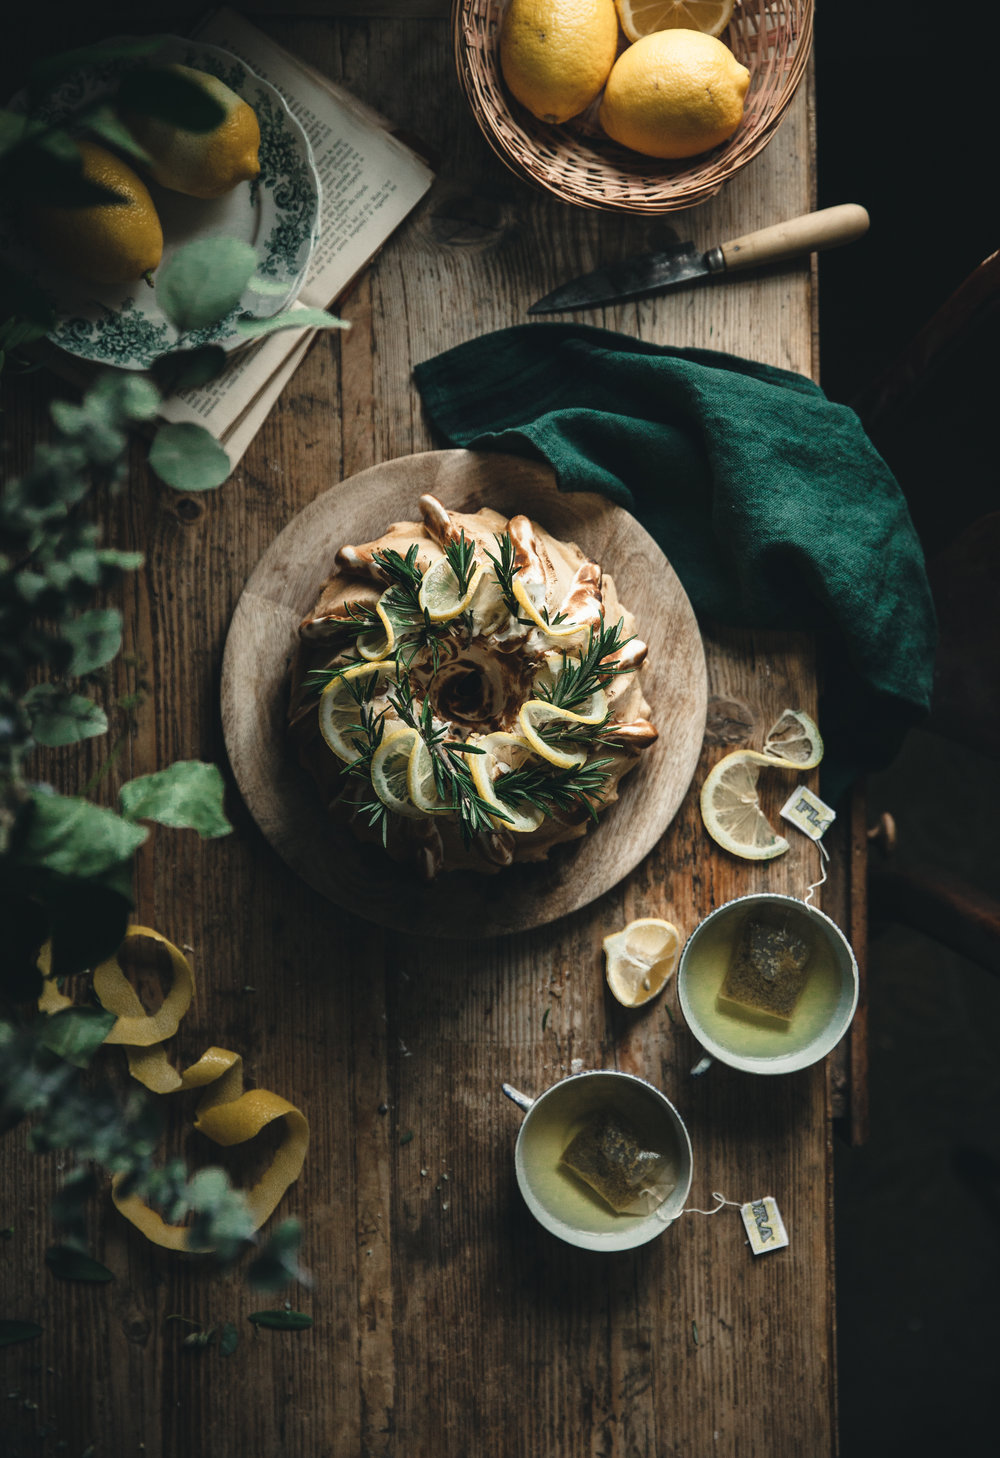 Lemon Rosemary Buttermilk Pound Cake 13 (1 of 1).jpg